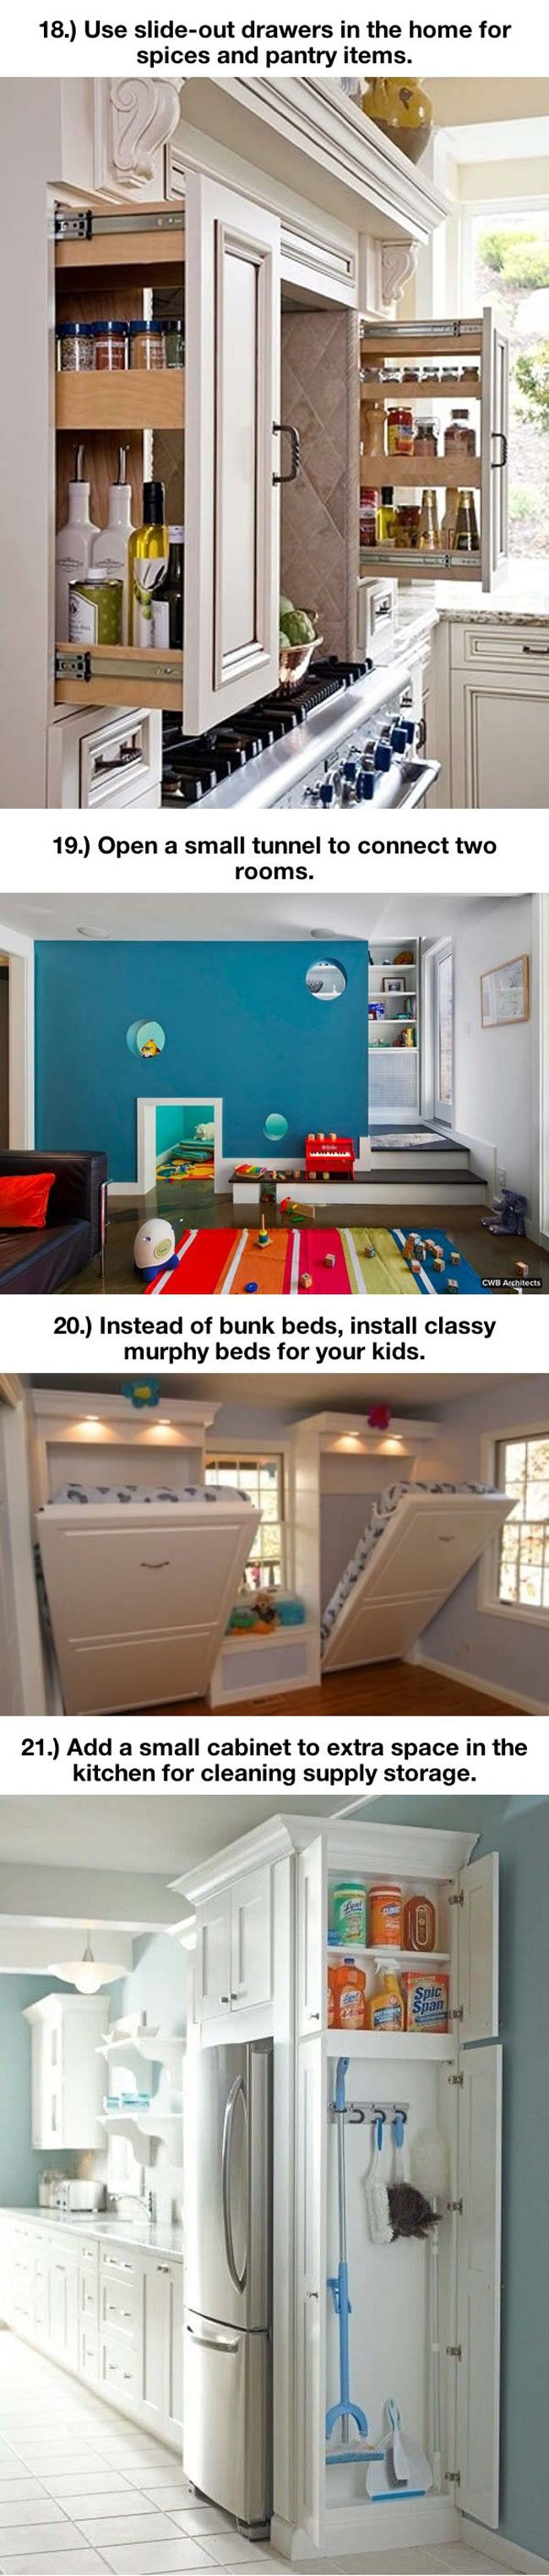 Things that will make your home extremely awesome bunk bed designs